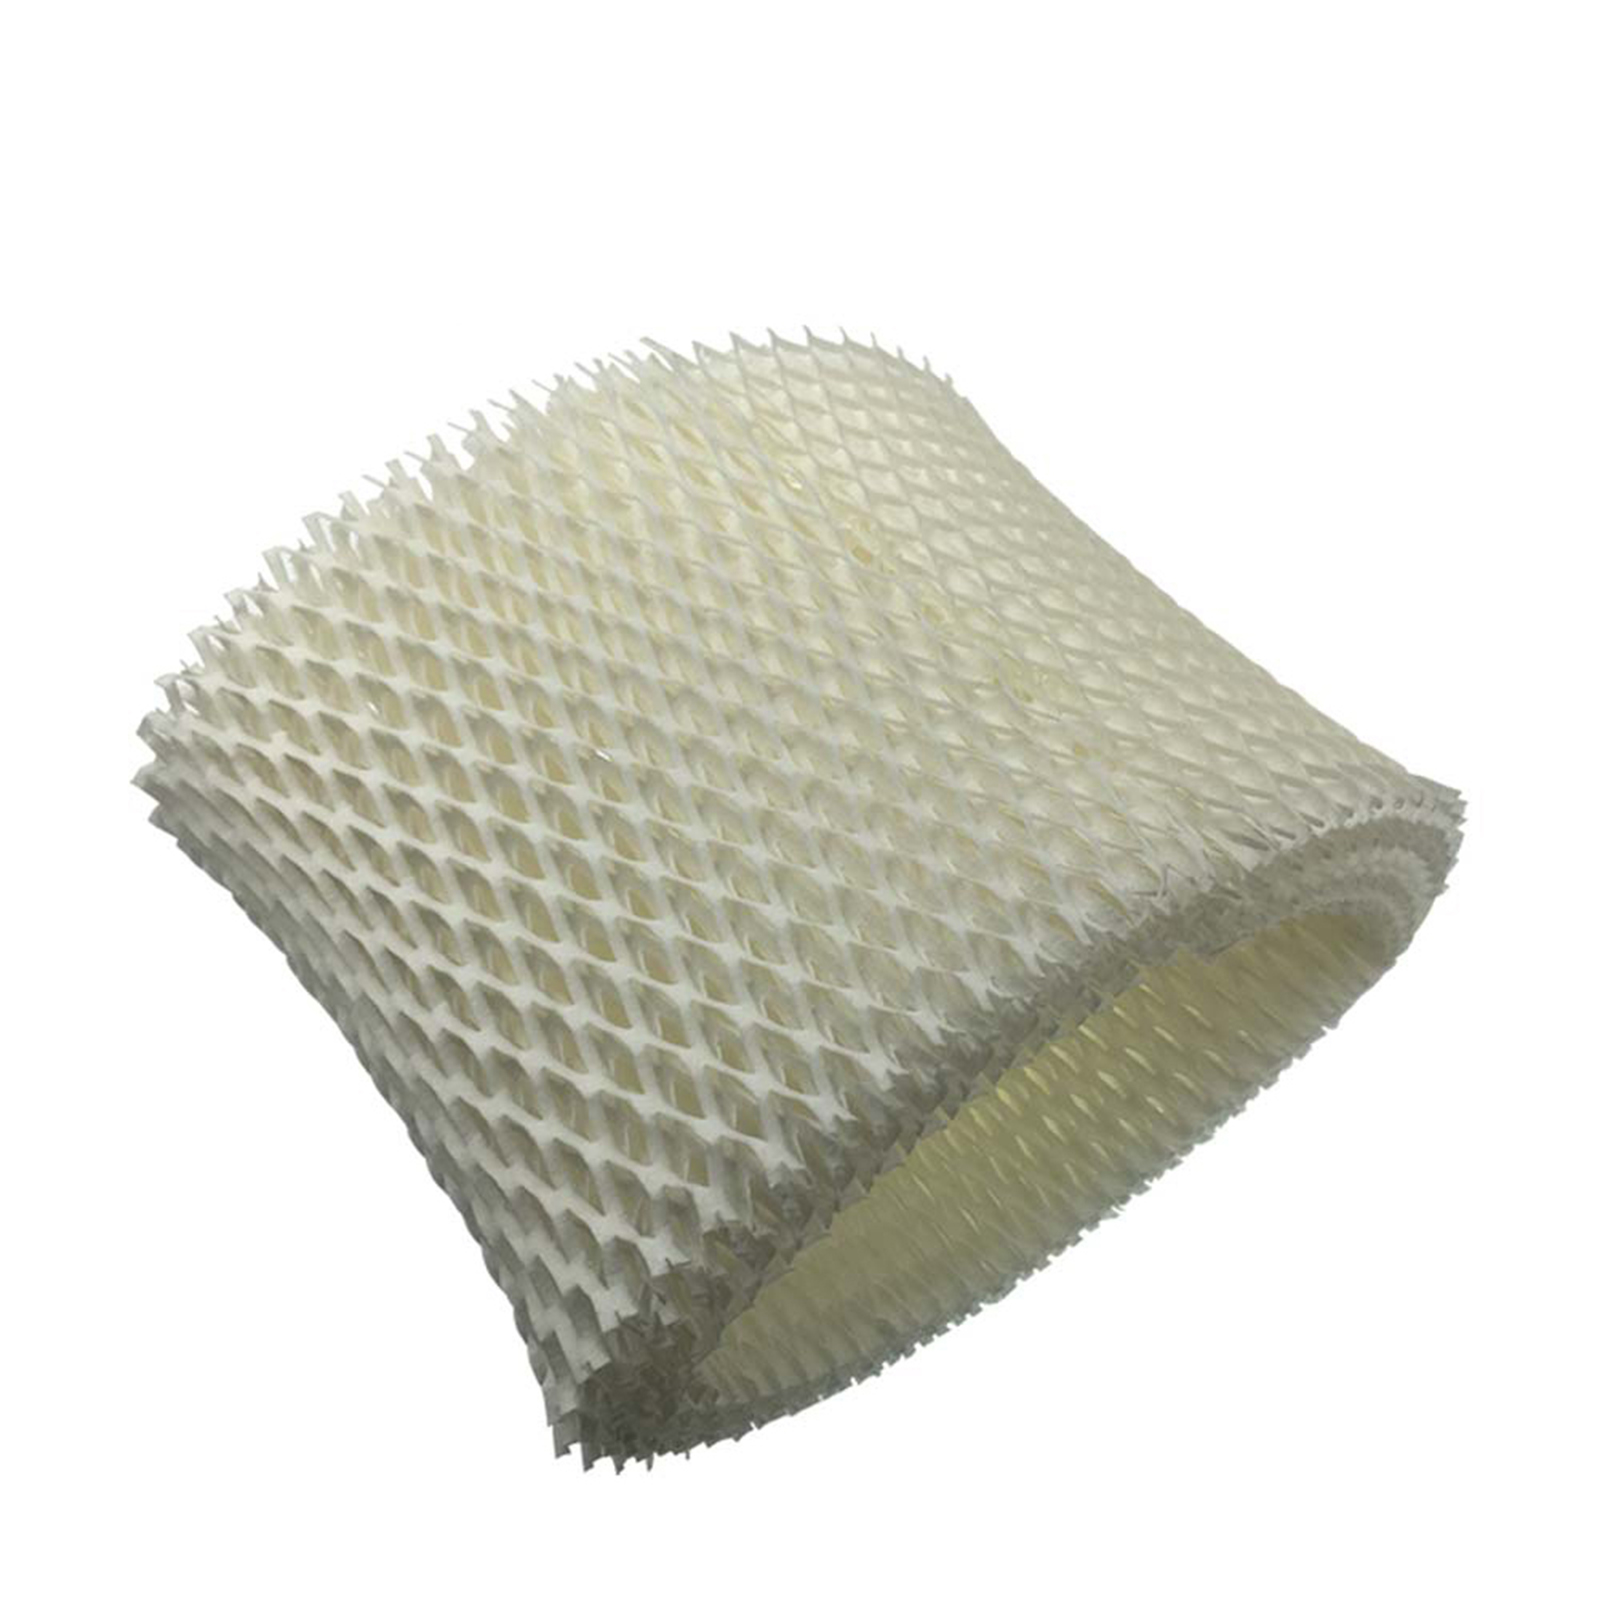 1pcs Humidifier Filter for Honeywell HC-888 HC888N HCM-890 HEV-320 Humidifier Parts High Quality Filters